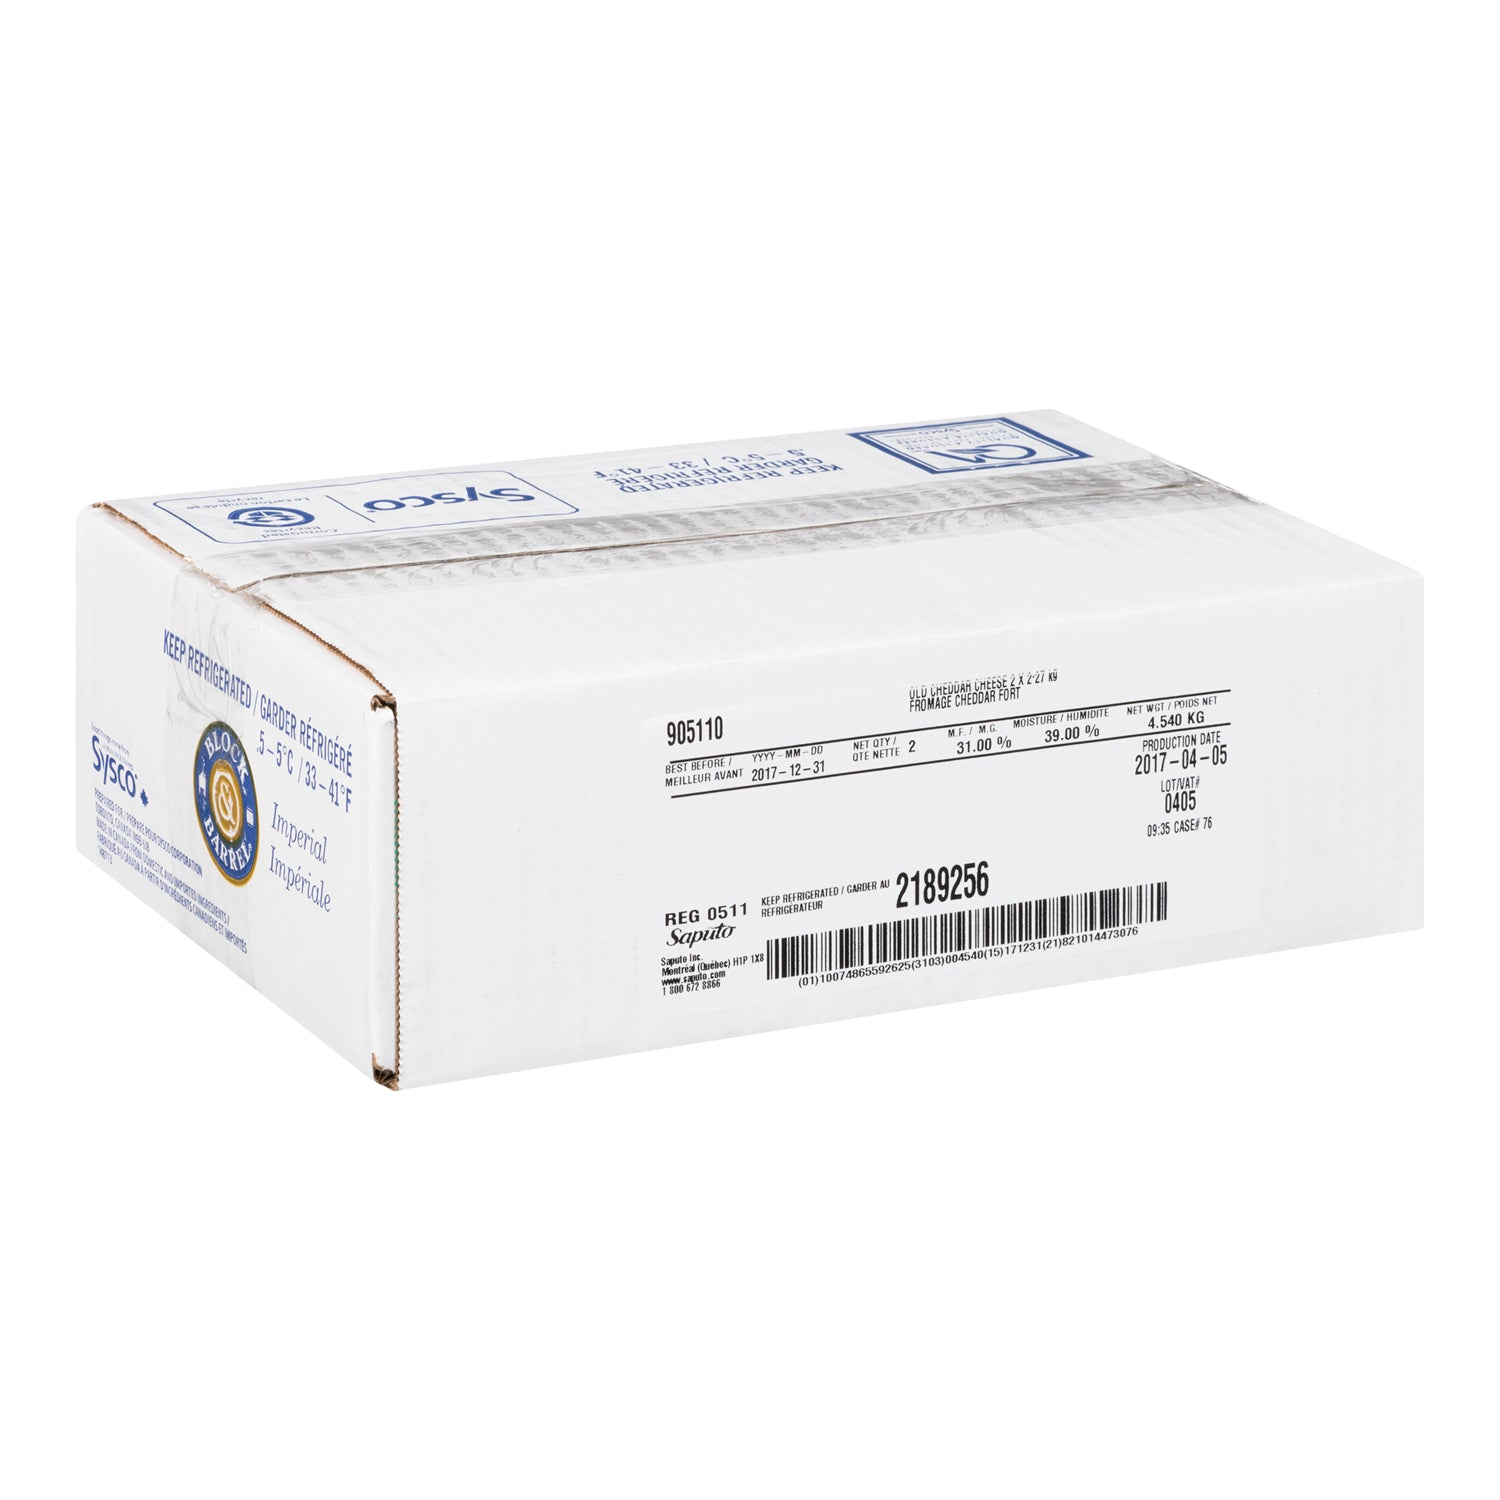 Sysco Block & Barrel Old Cheddar Cheese Block 2.27 kg - 2 Pack [$17.07/kg]